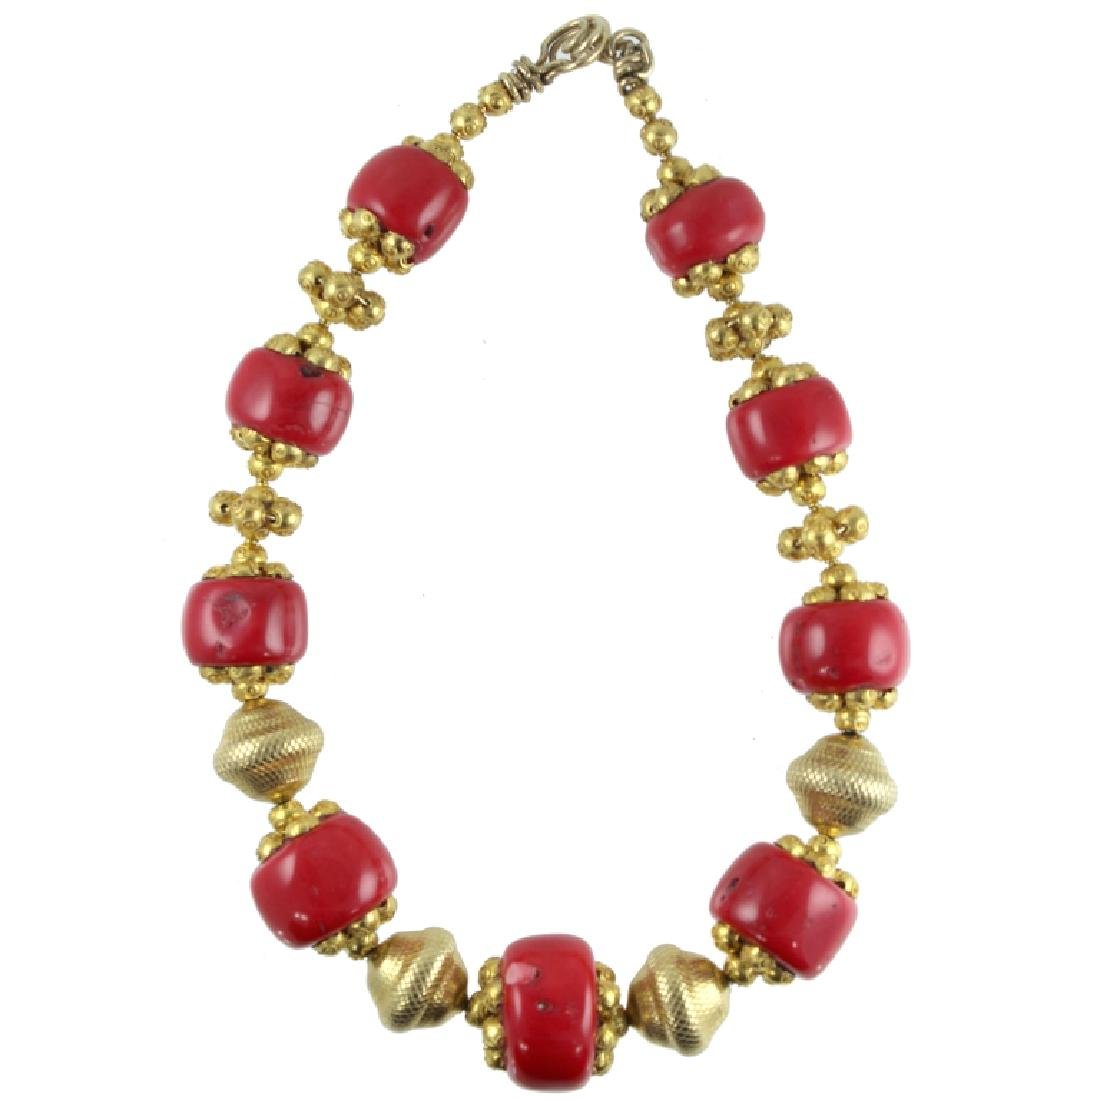 VERY LARGE 18K CORAL NECKLACE